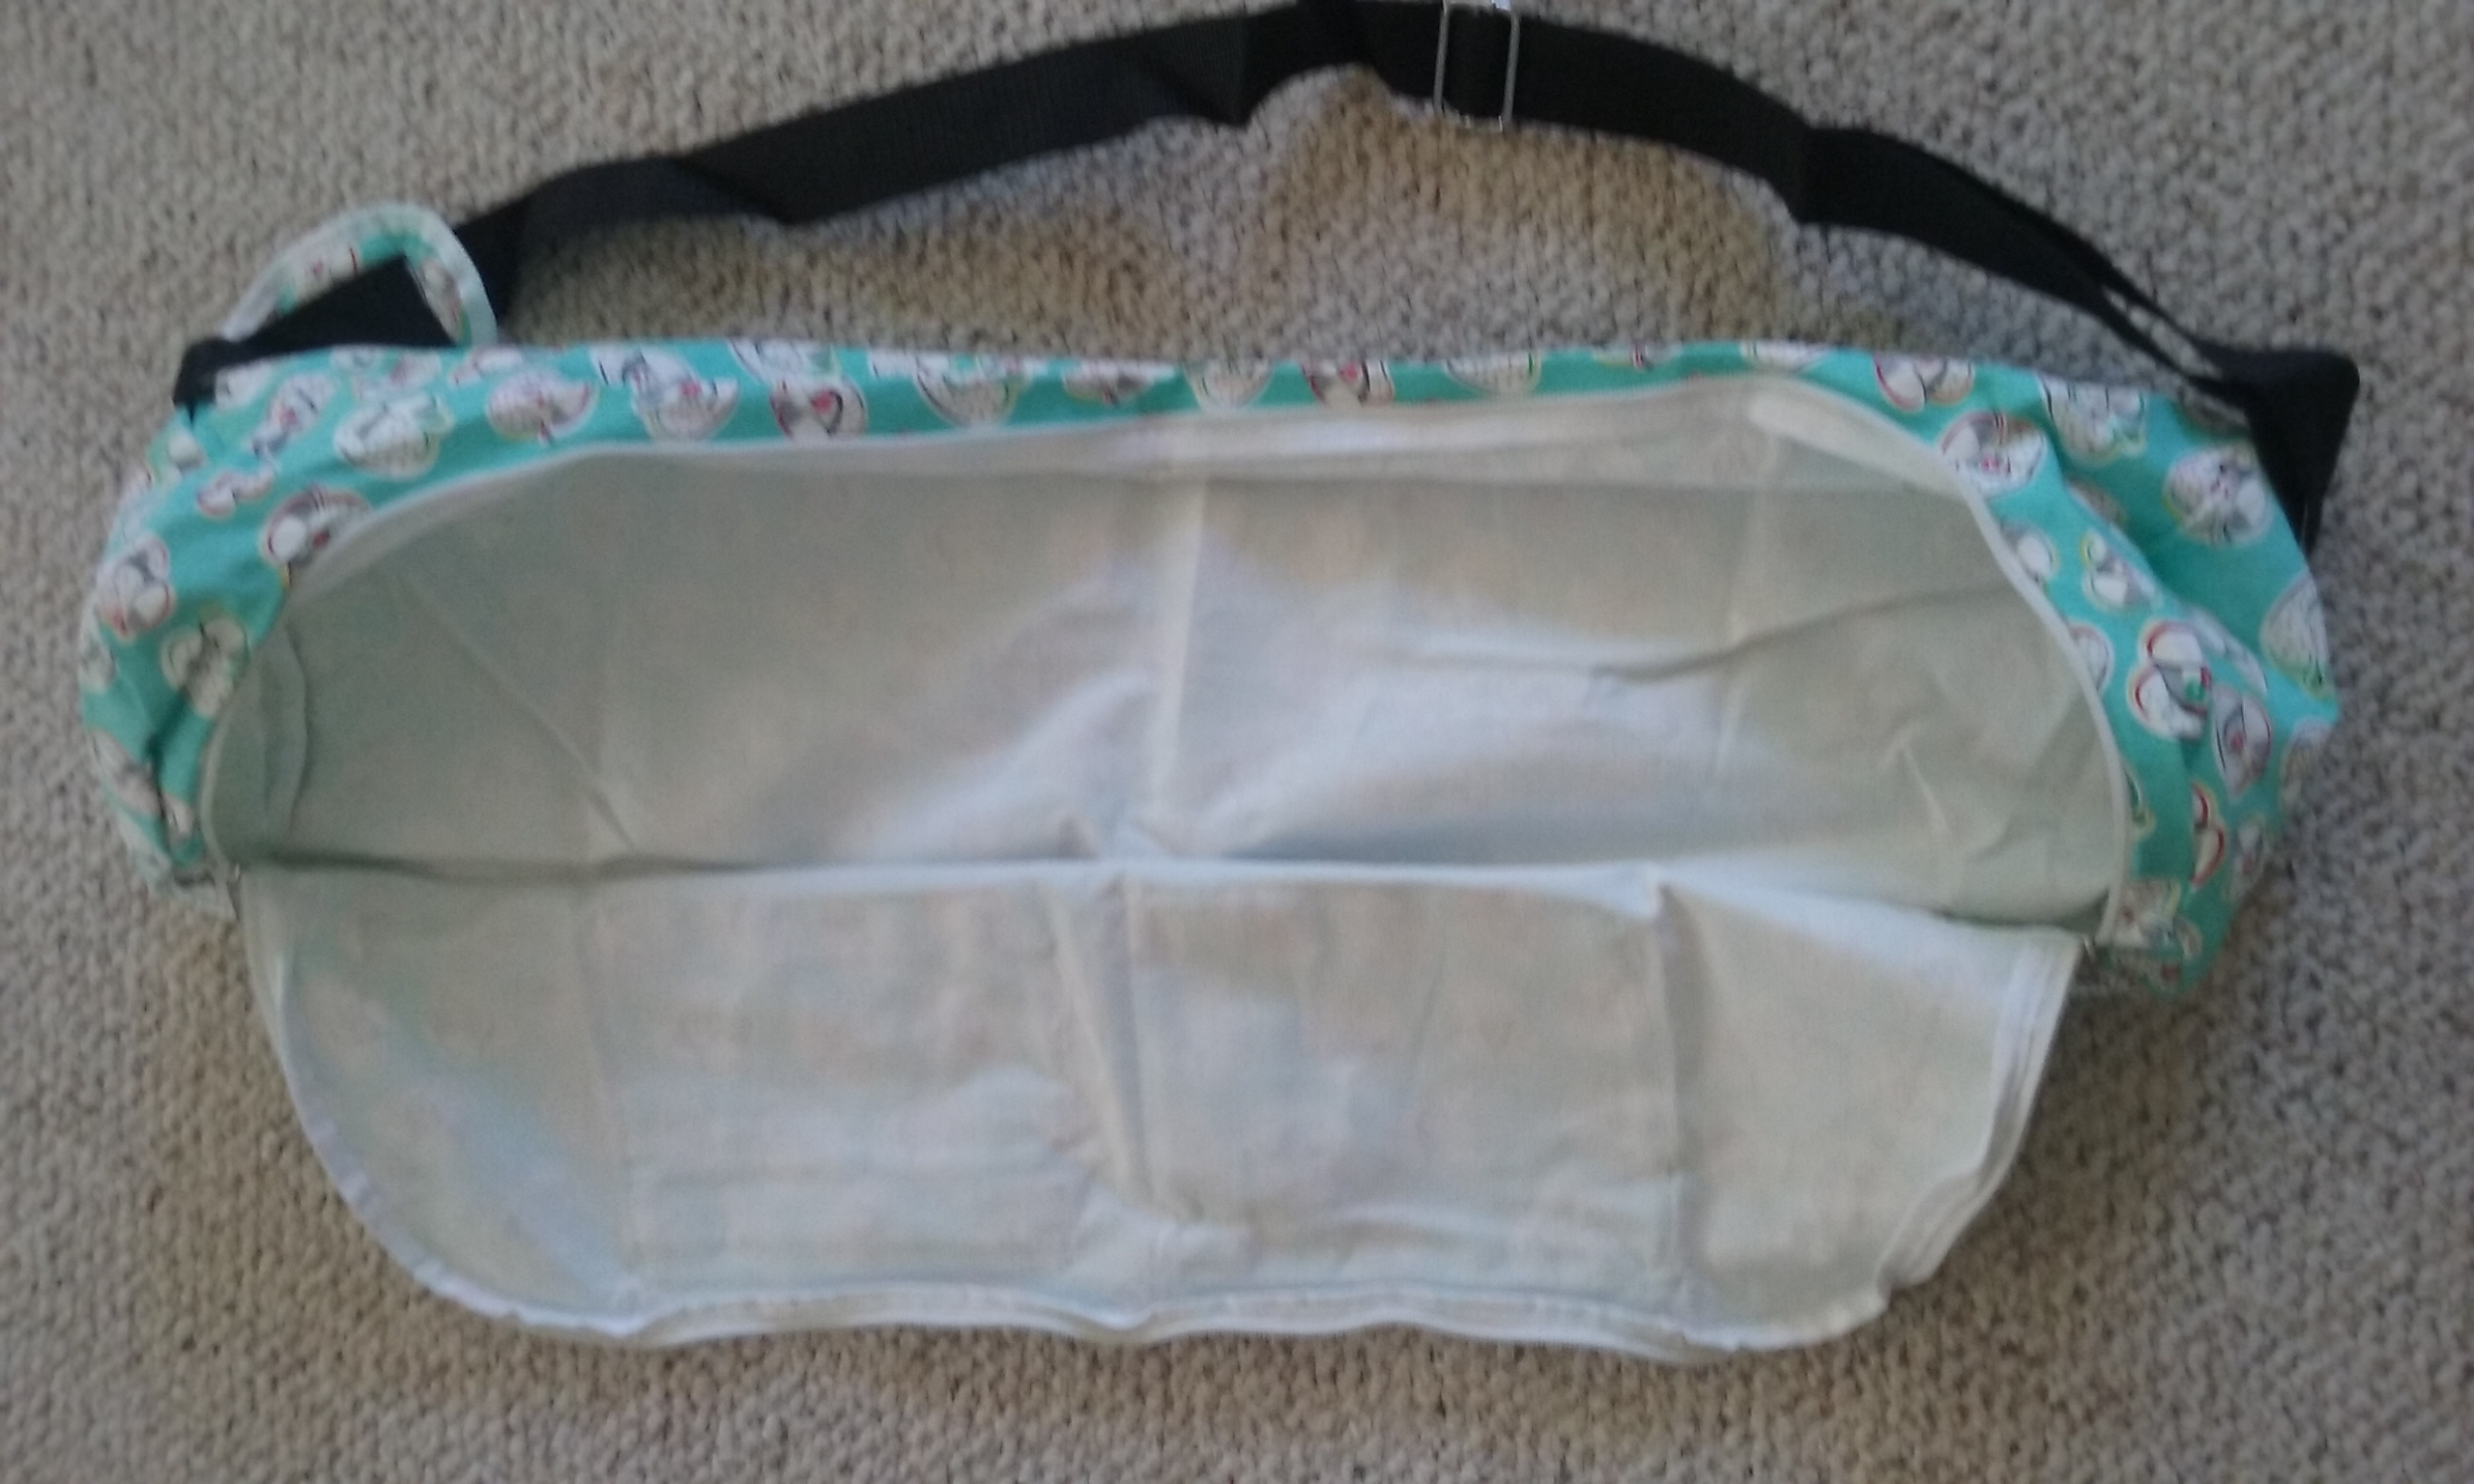 CUTE EXERCISE MAT BAG - NO MAT INCLUDED